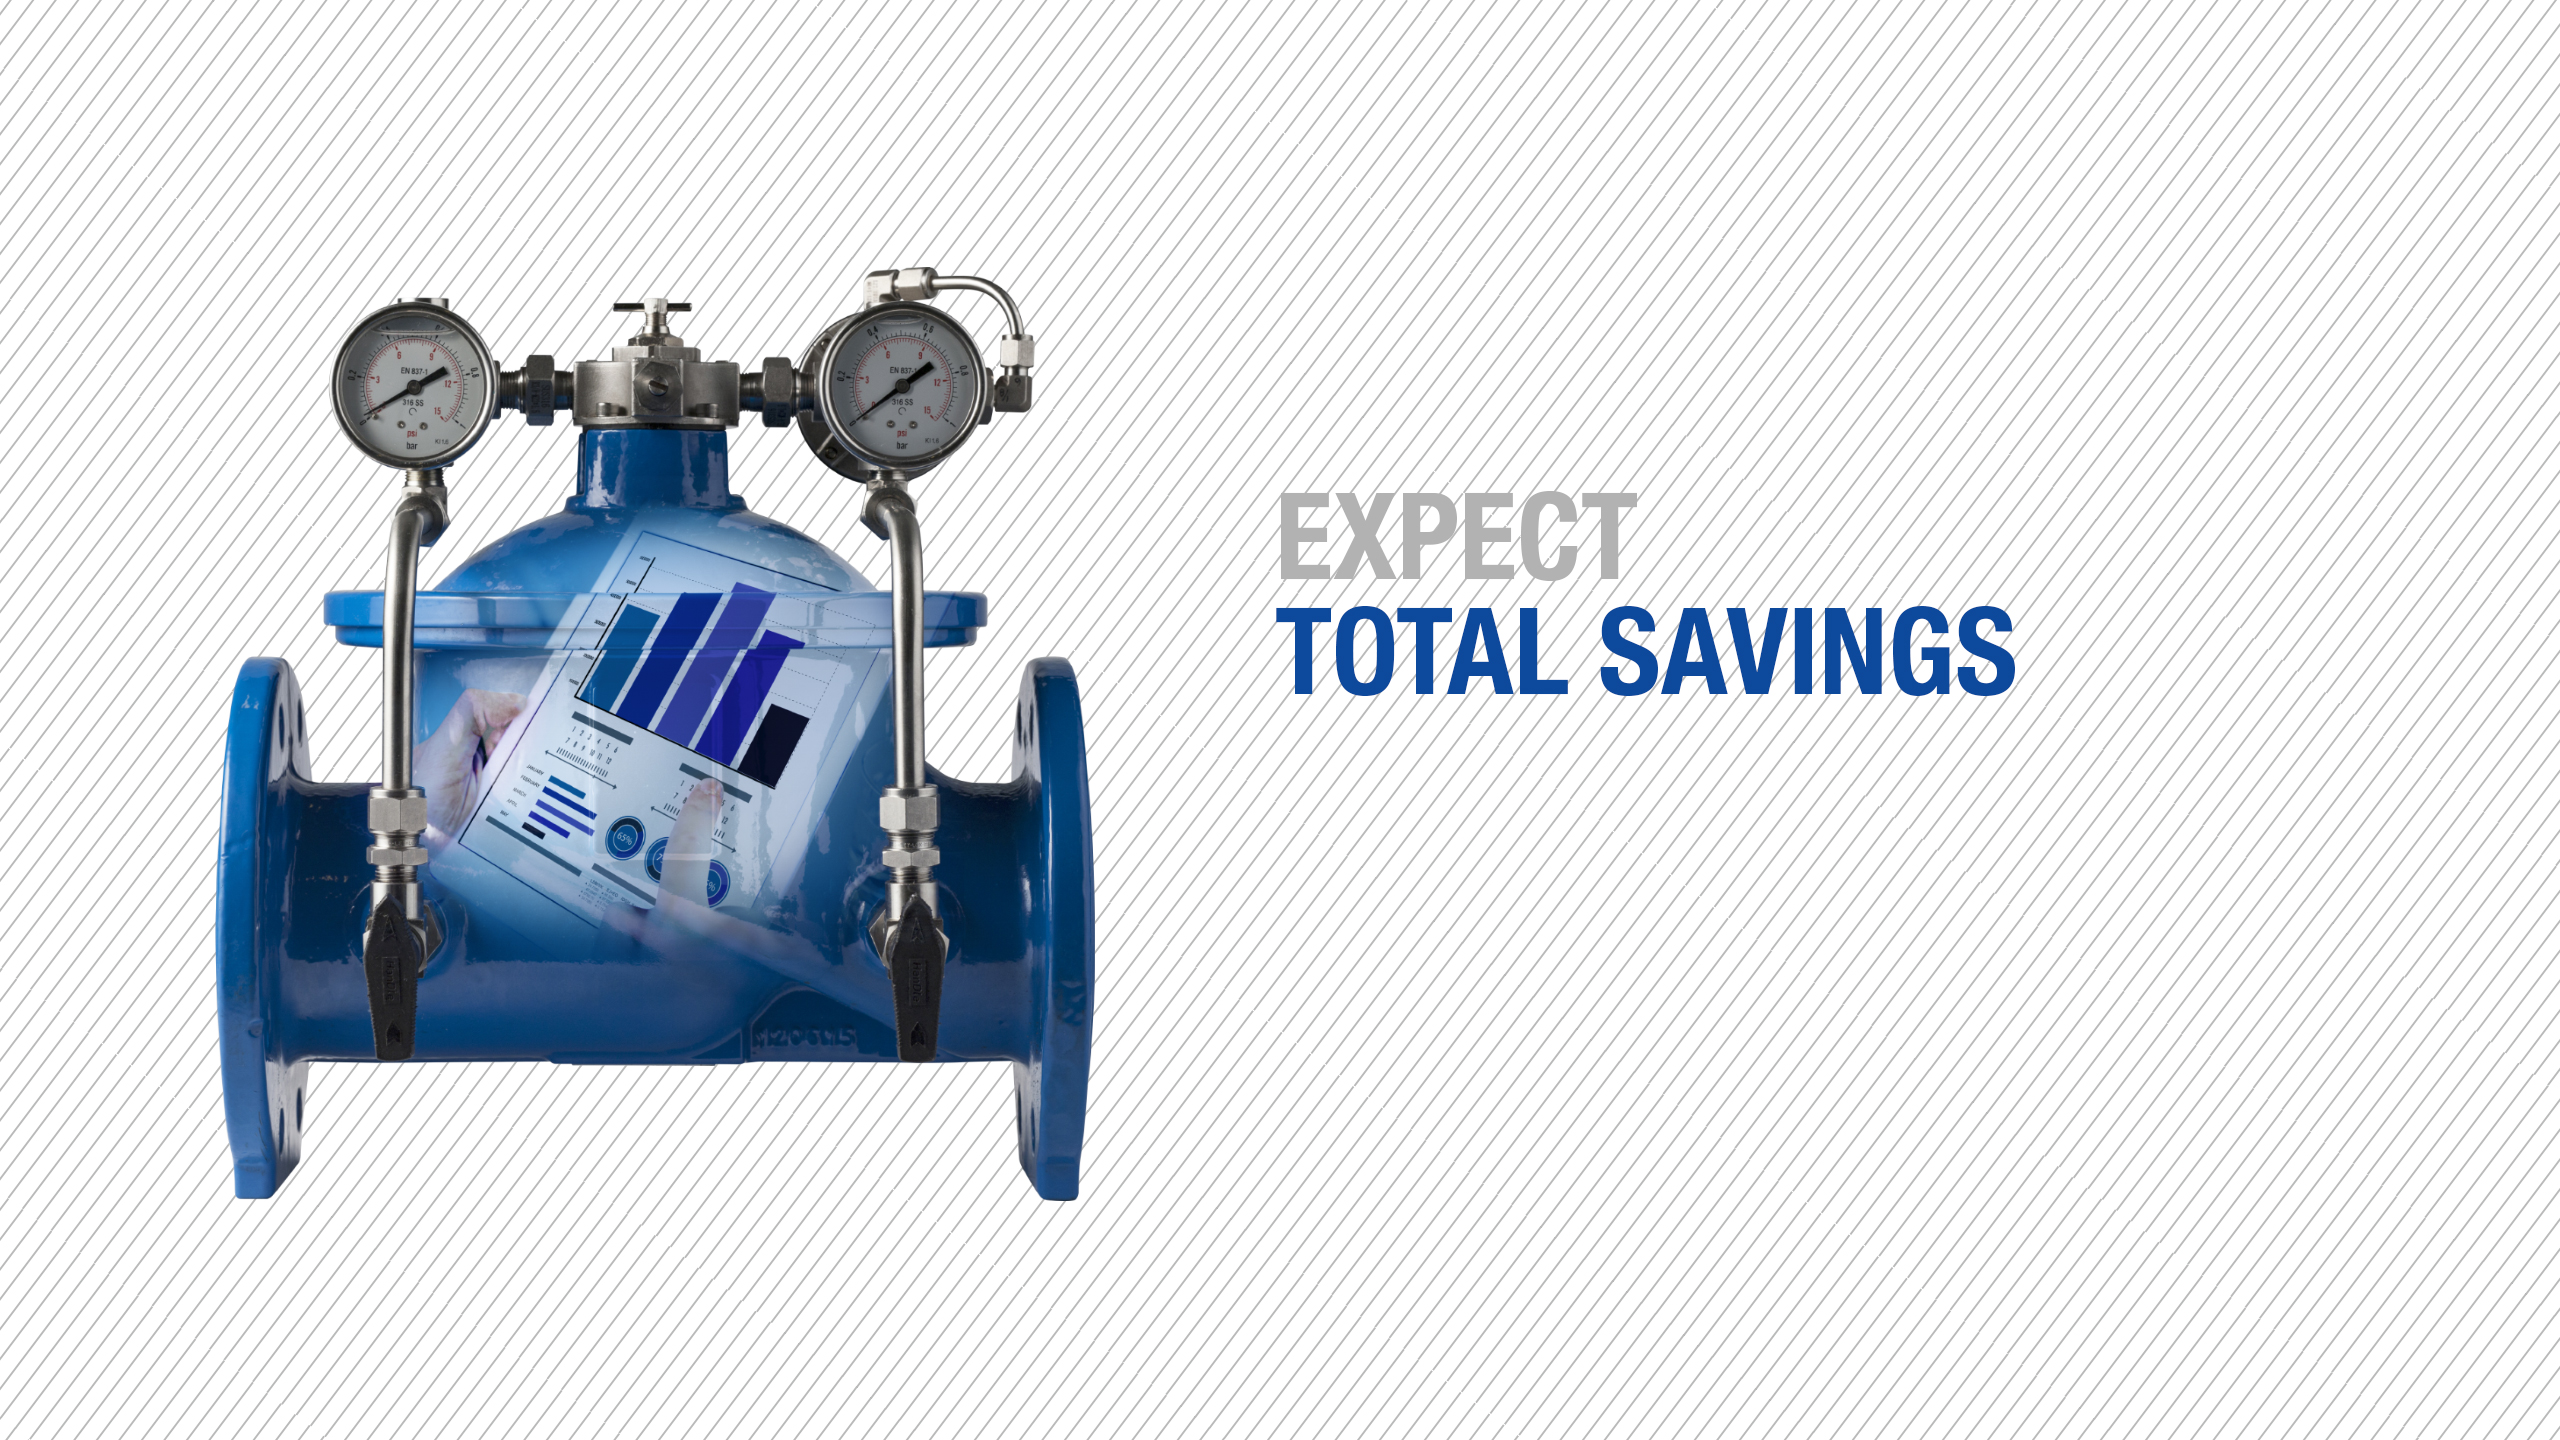 Expect total savings from AVK